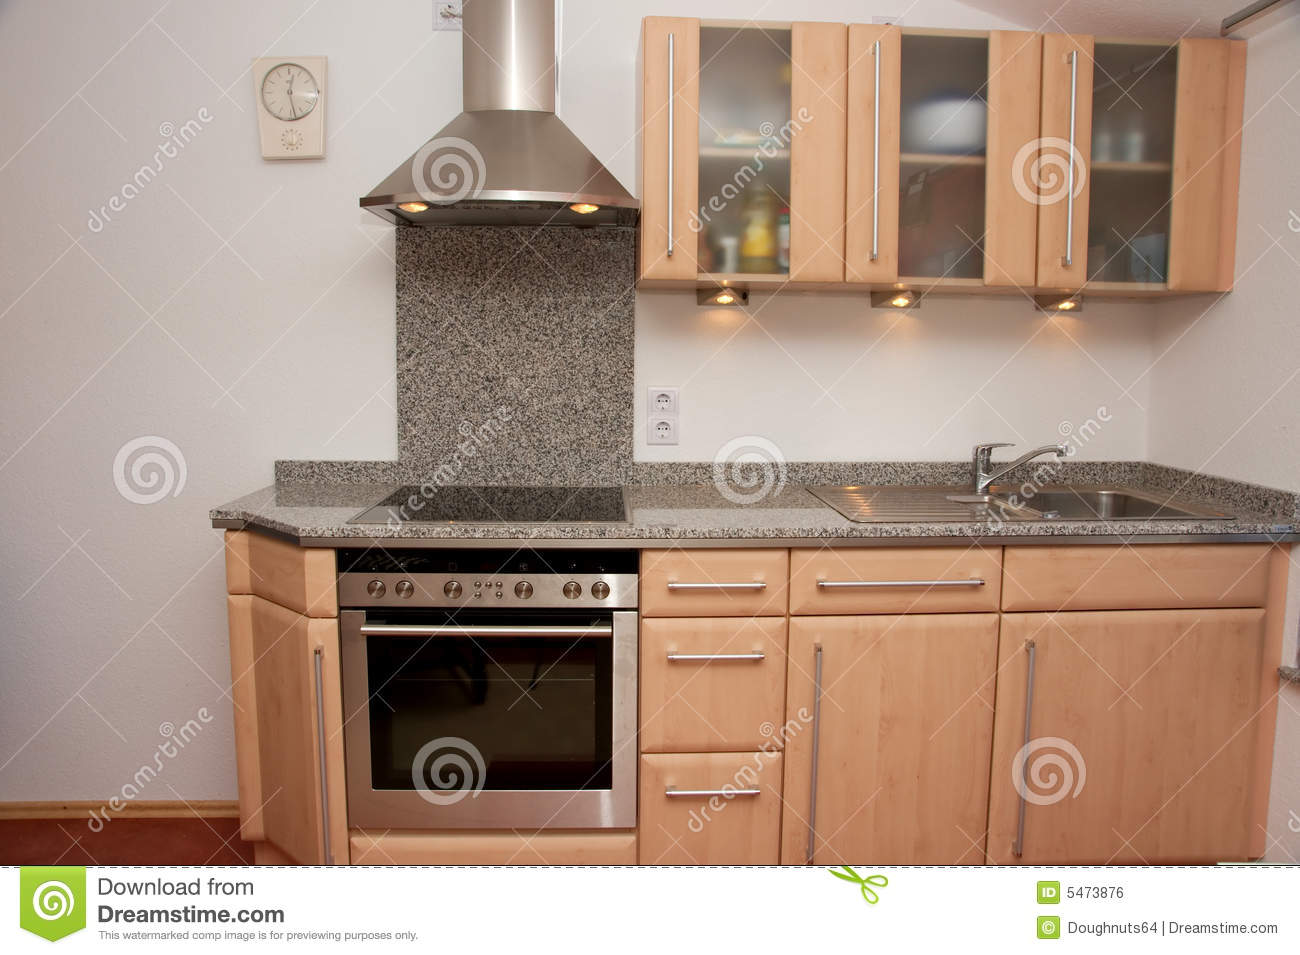 how to clean kitchen units